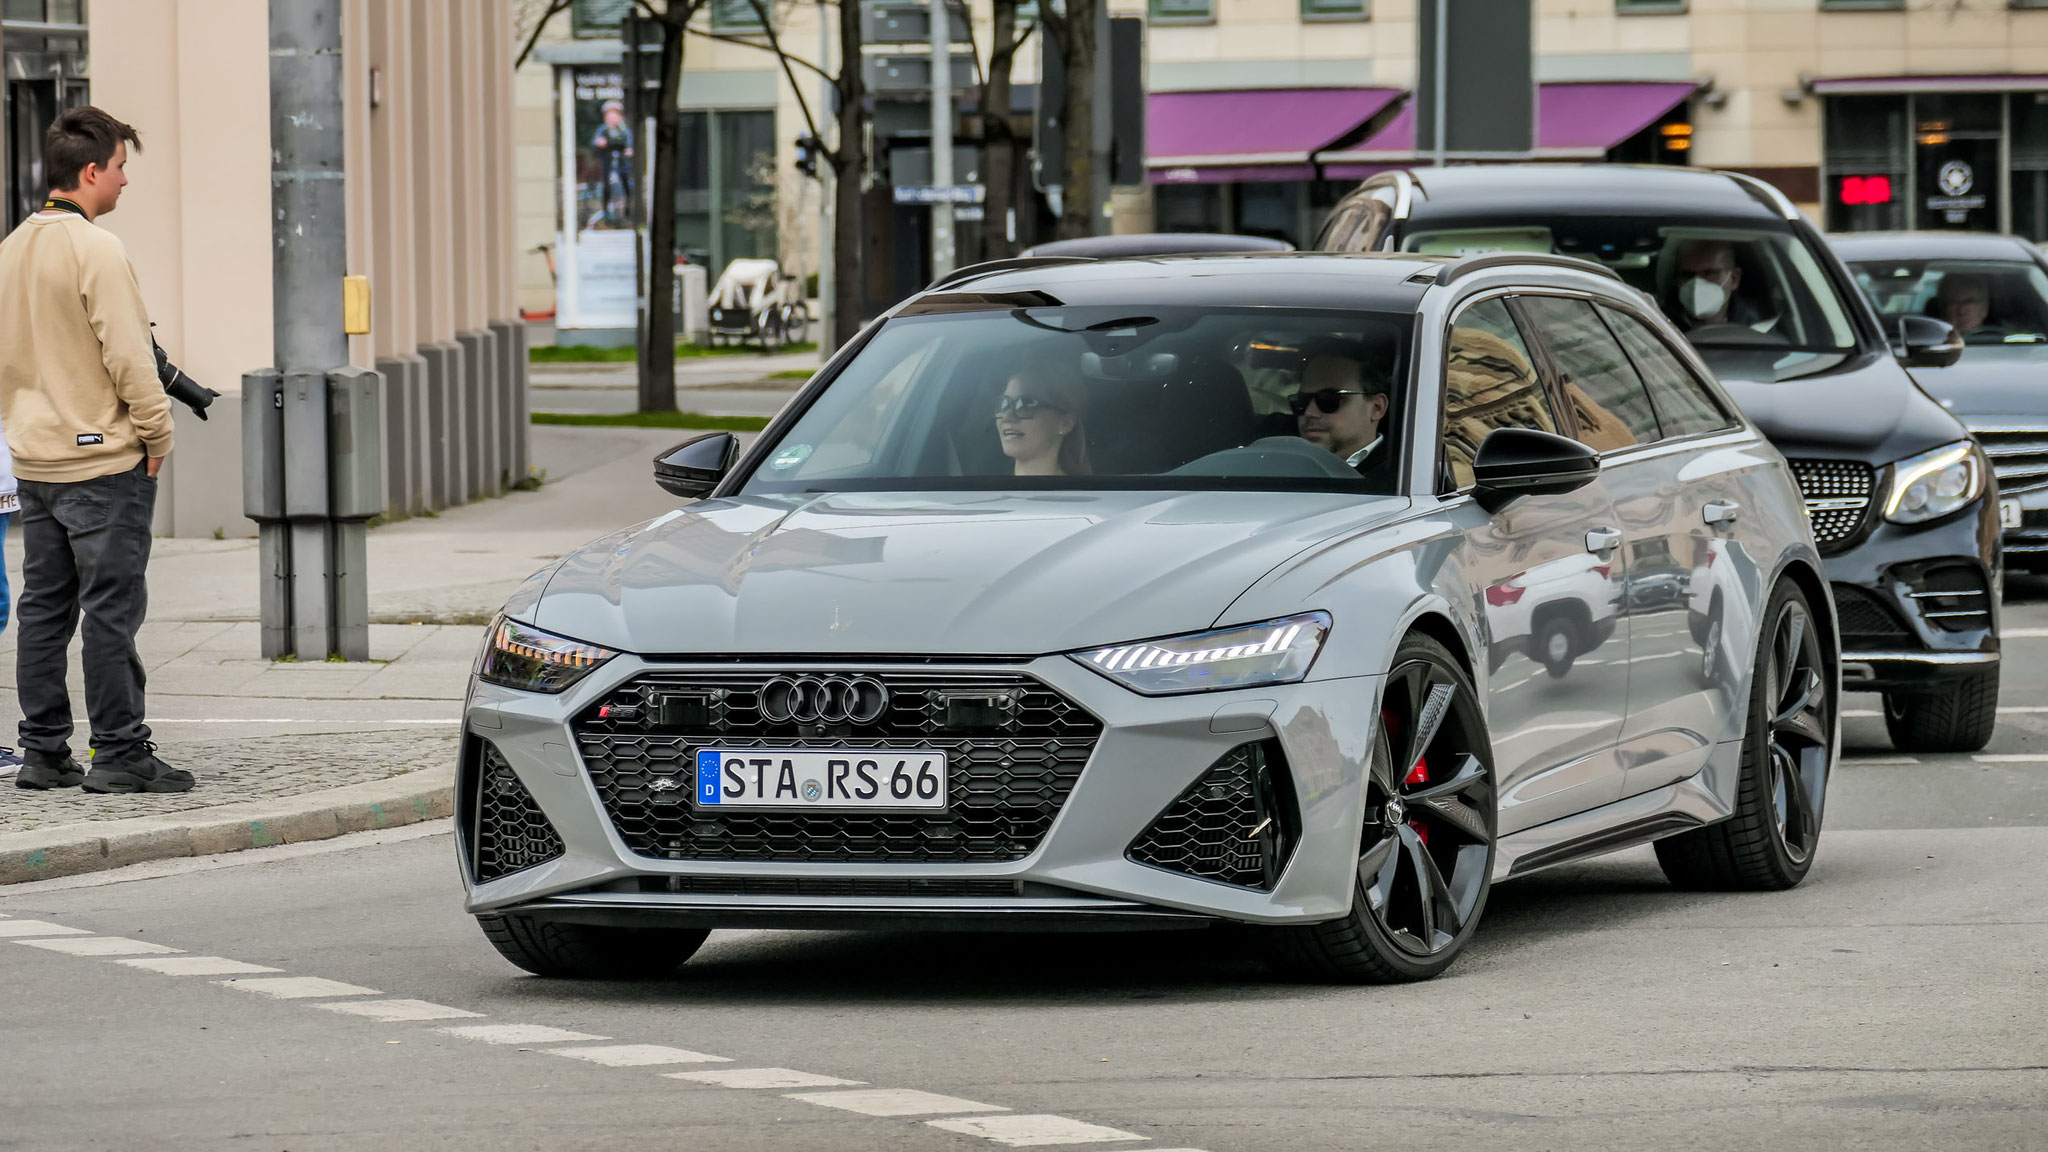 Audi RS6 - STA-RS-66